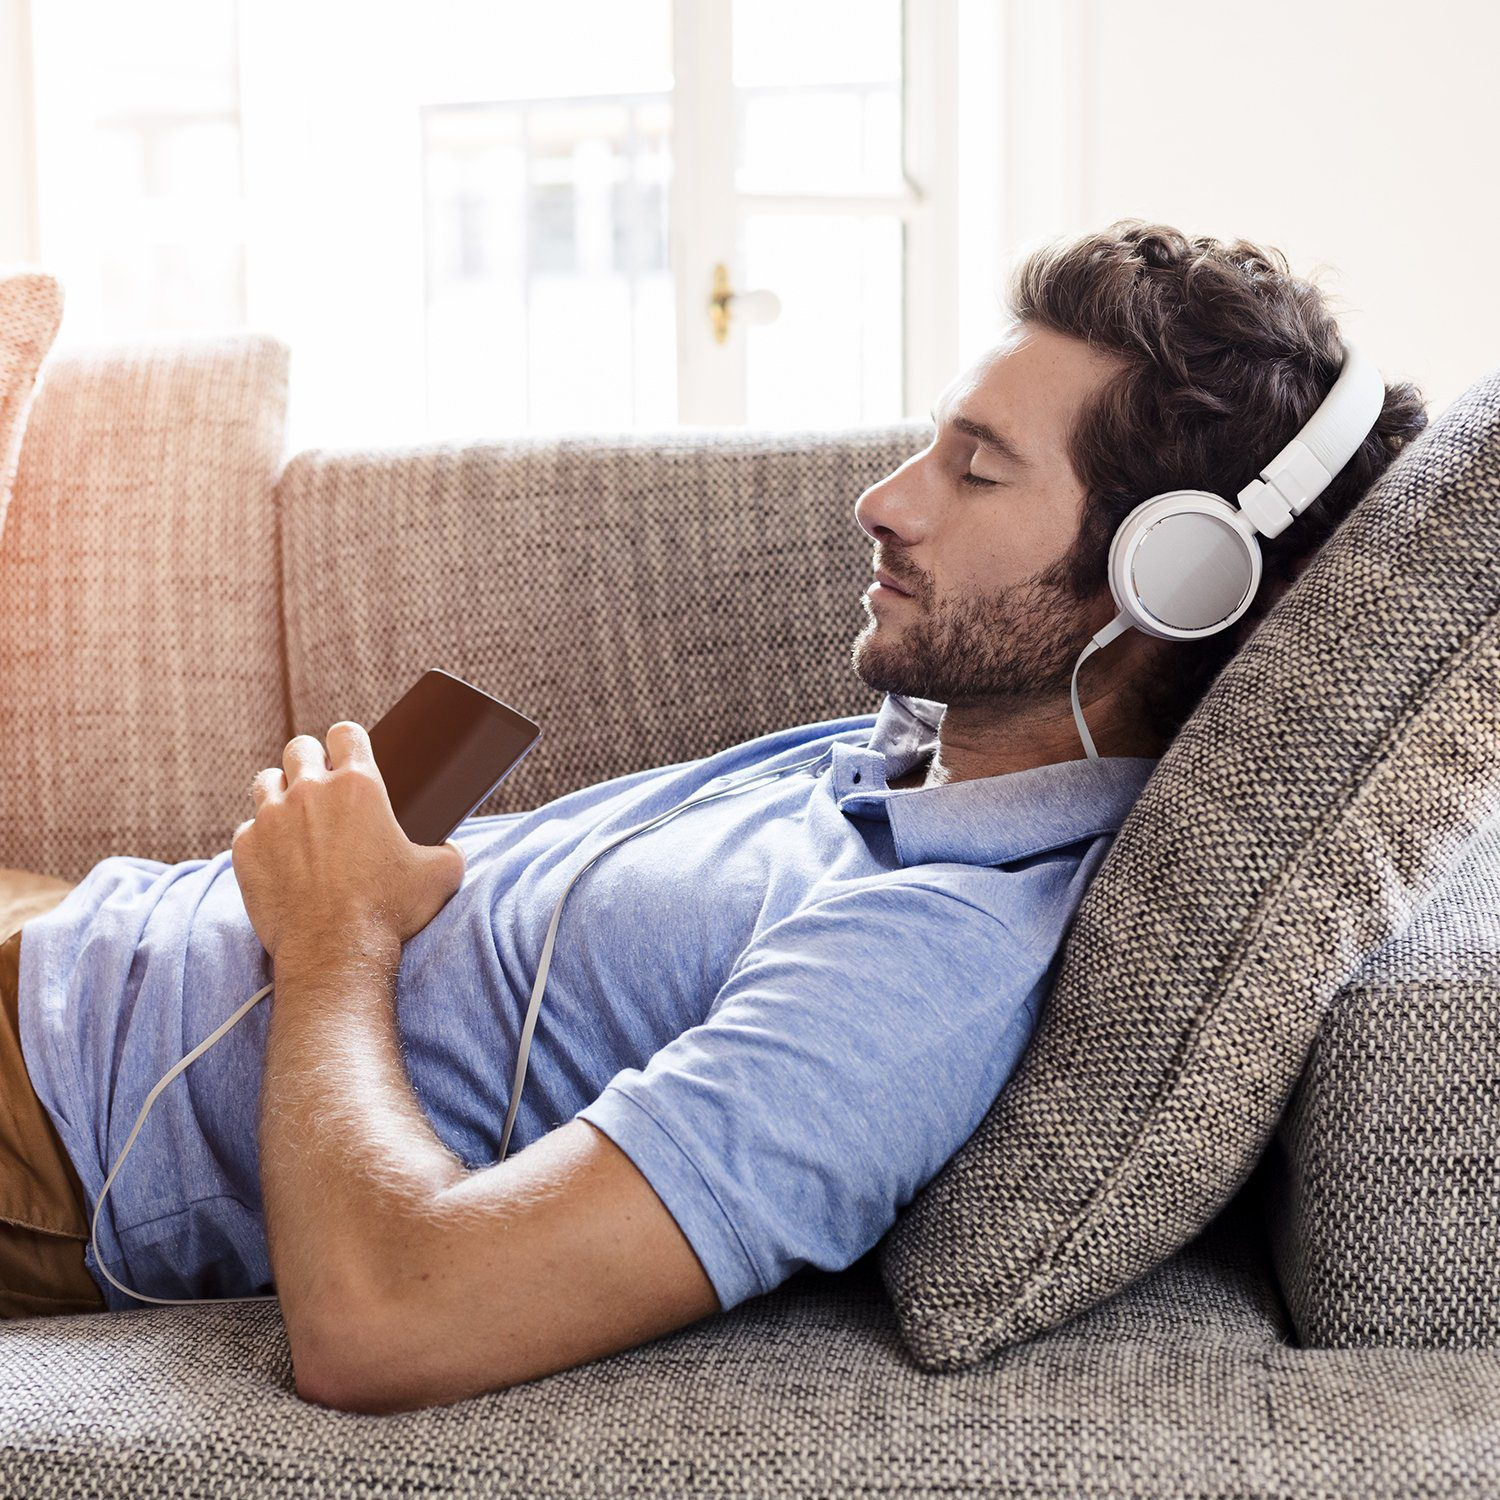 Cannabis Strains for Relaxation